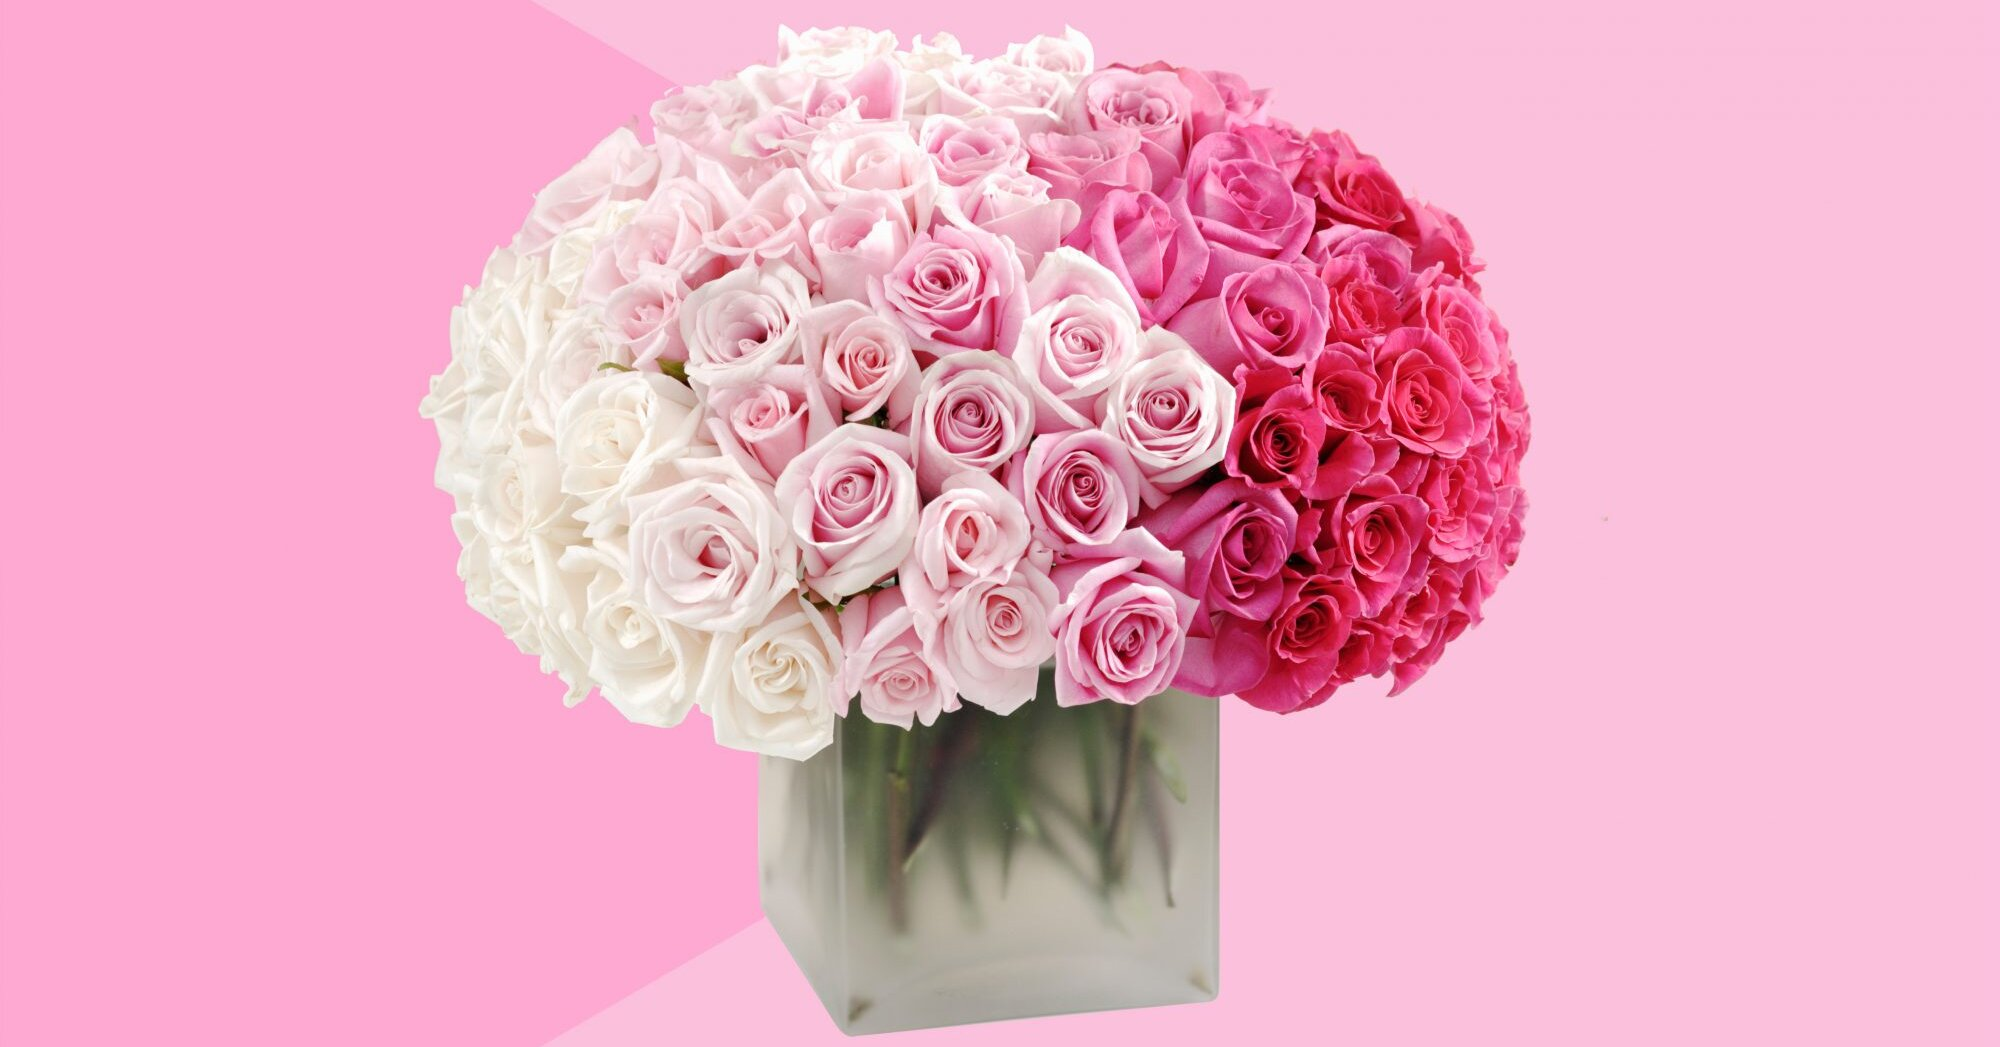 Best Flower Delivery Services to Use Online | Real Simple